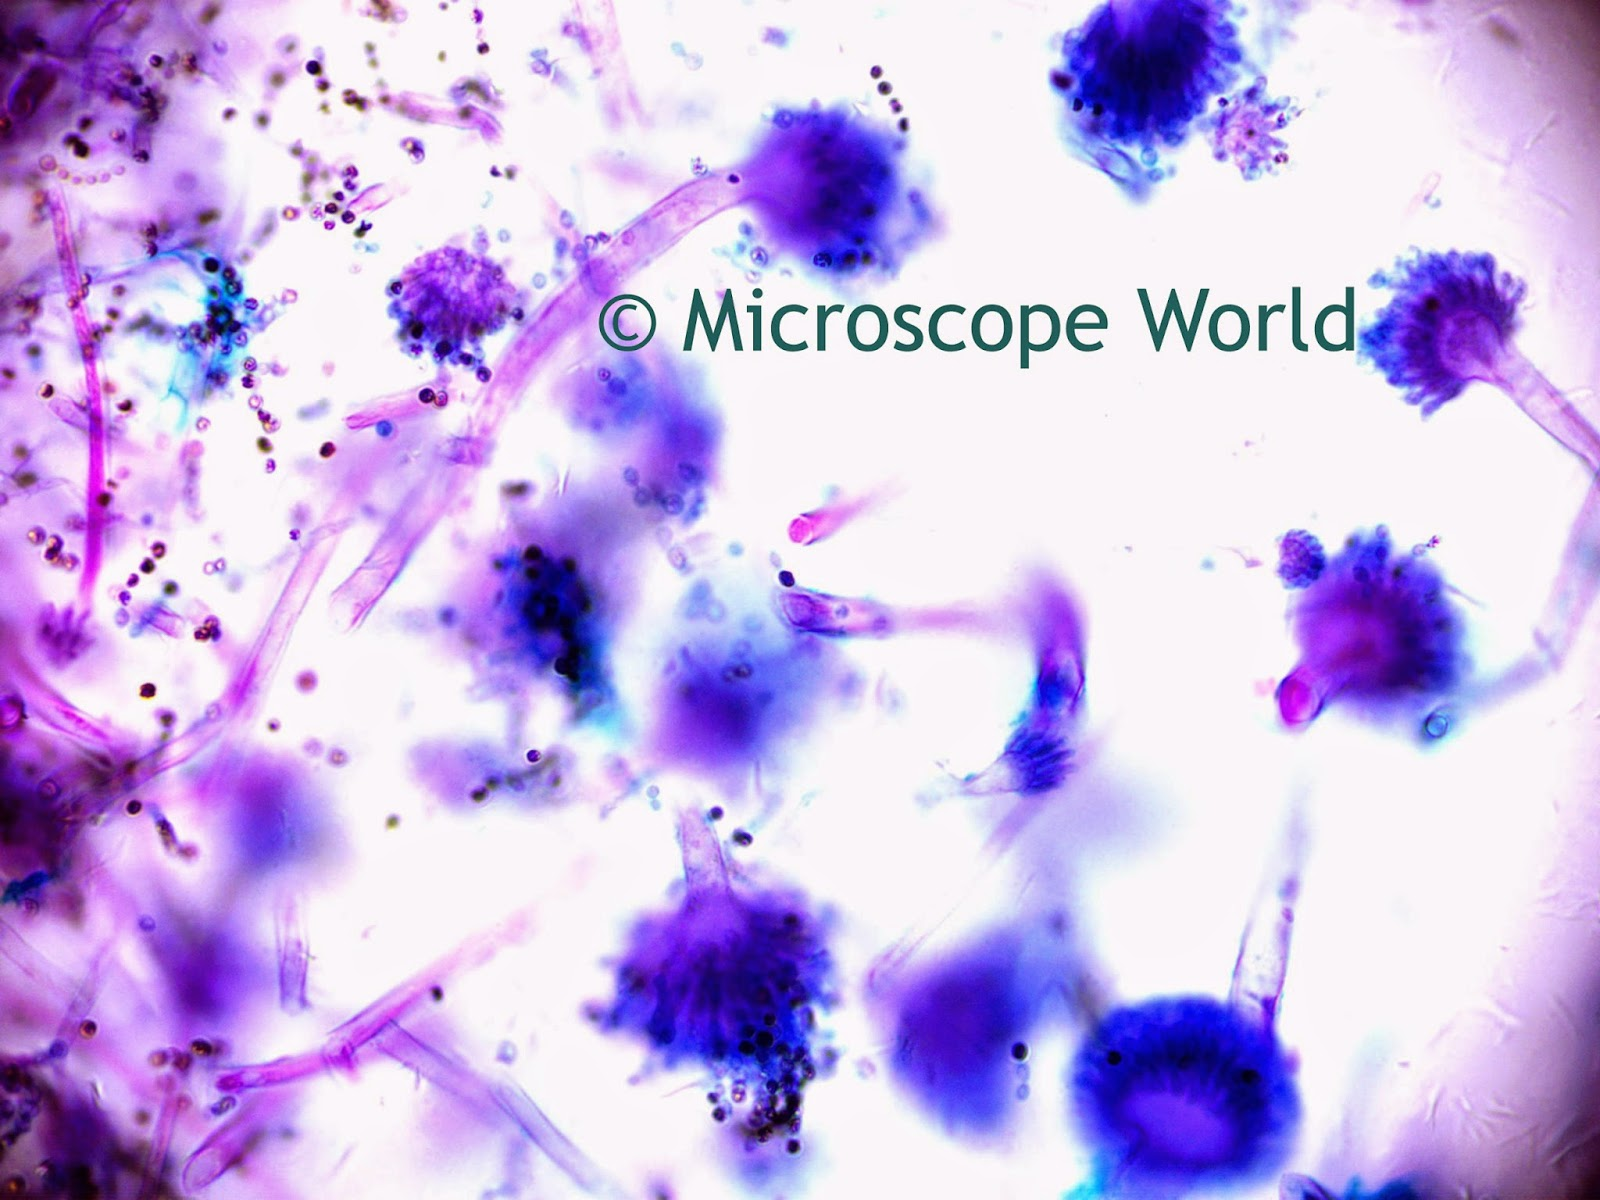 Microscope World Blog: Mold Under the Microscope